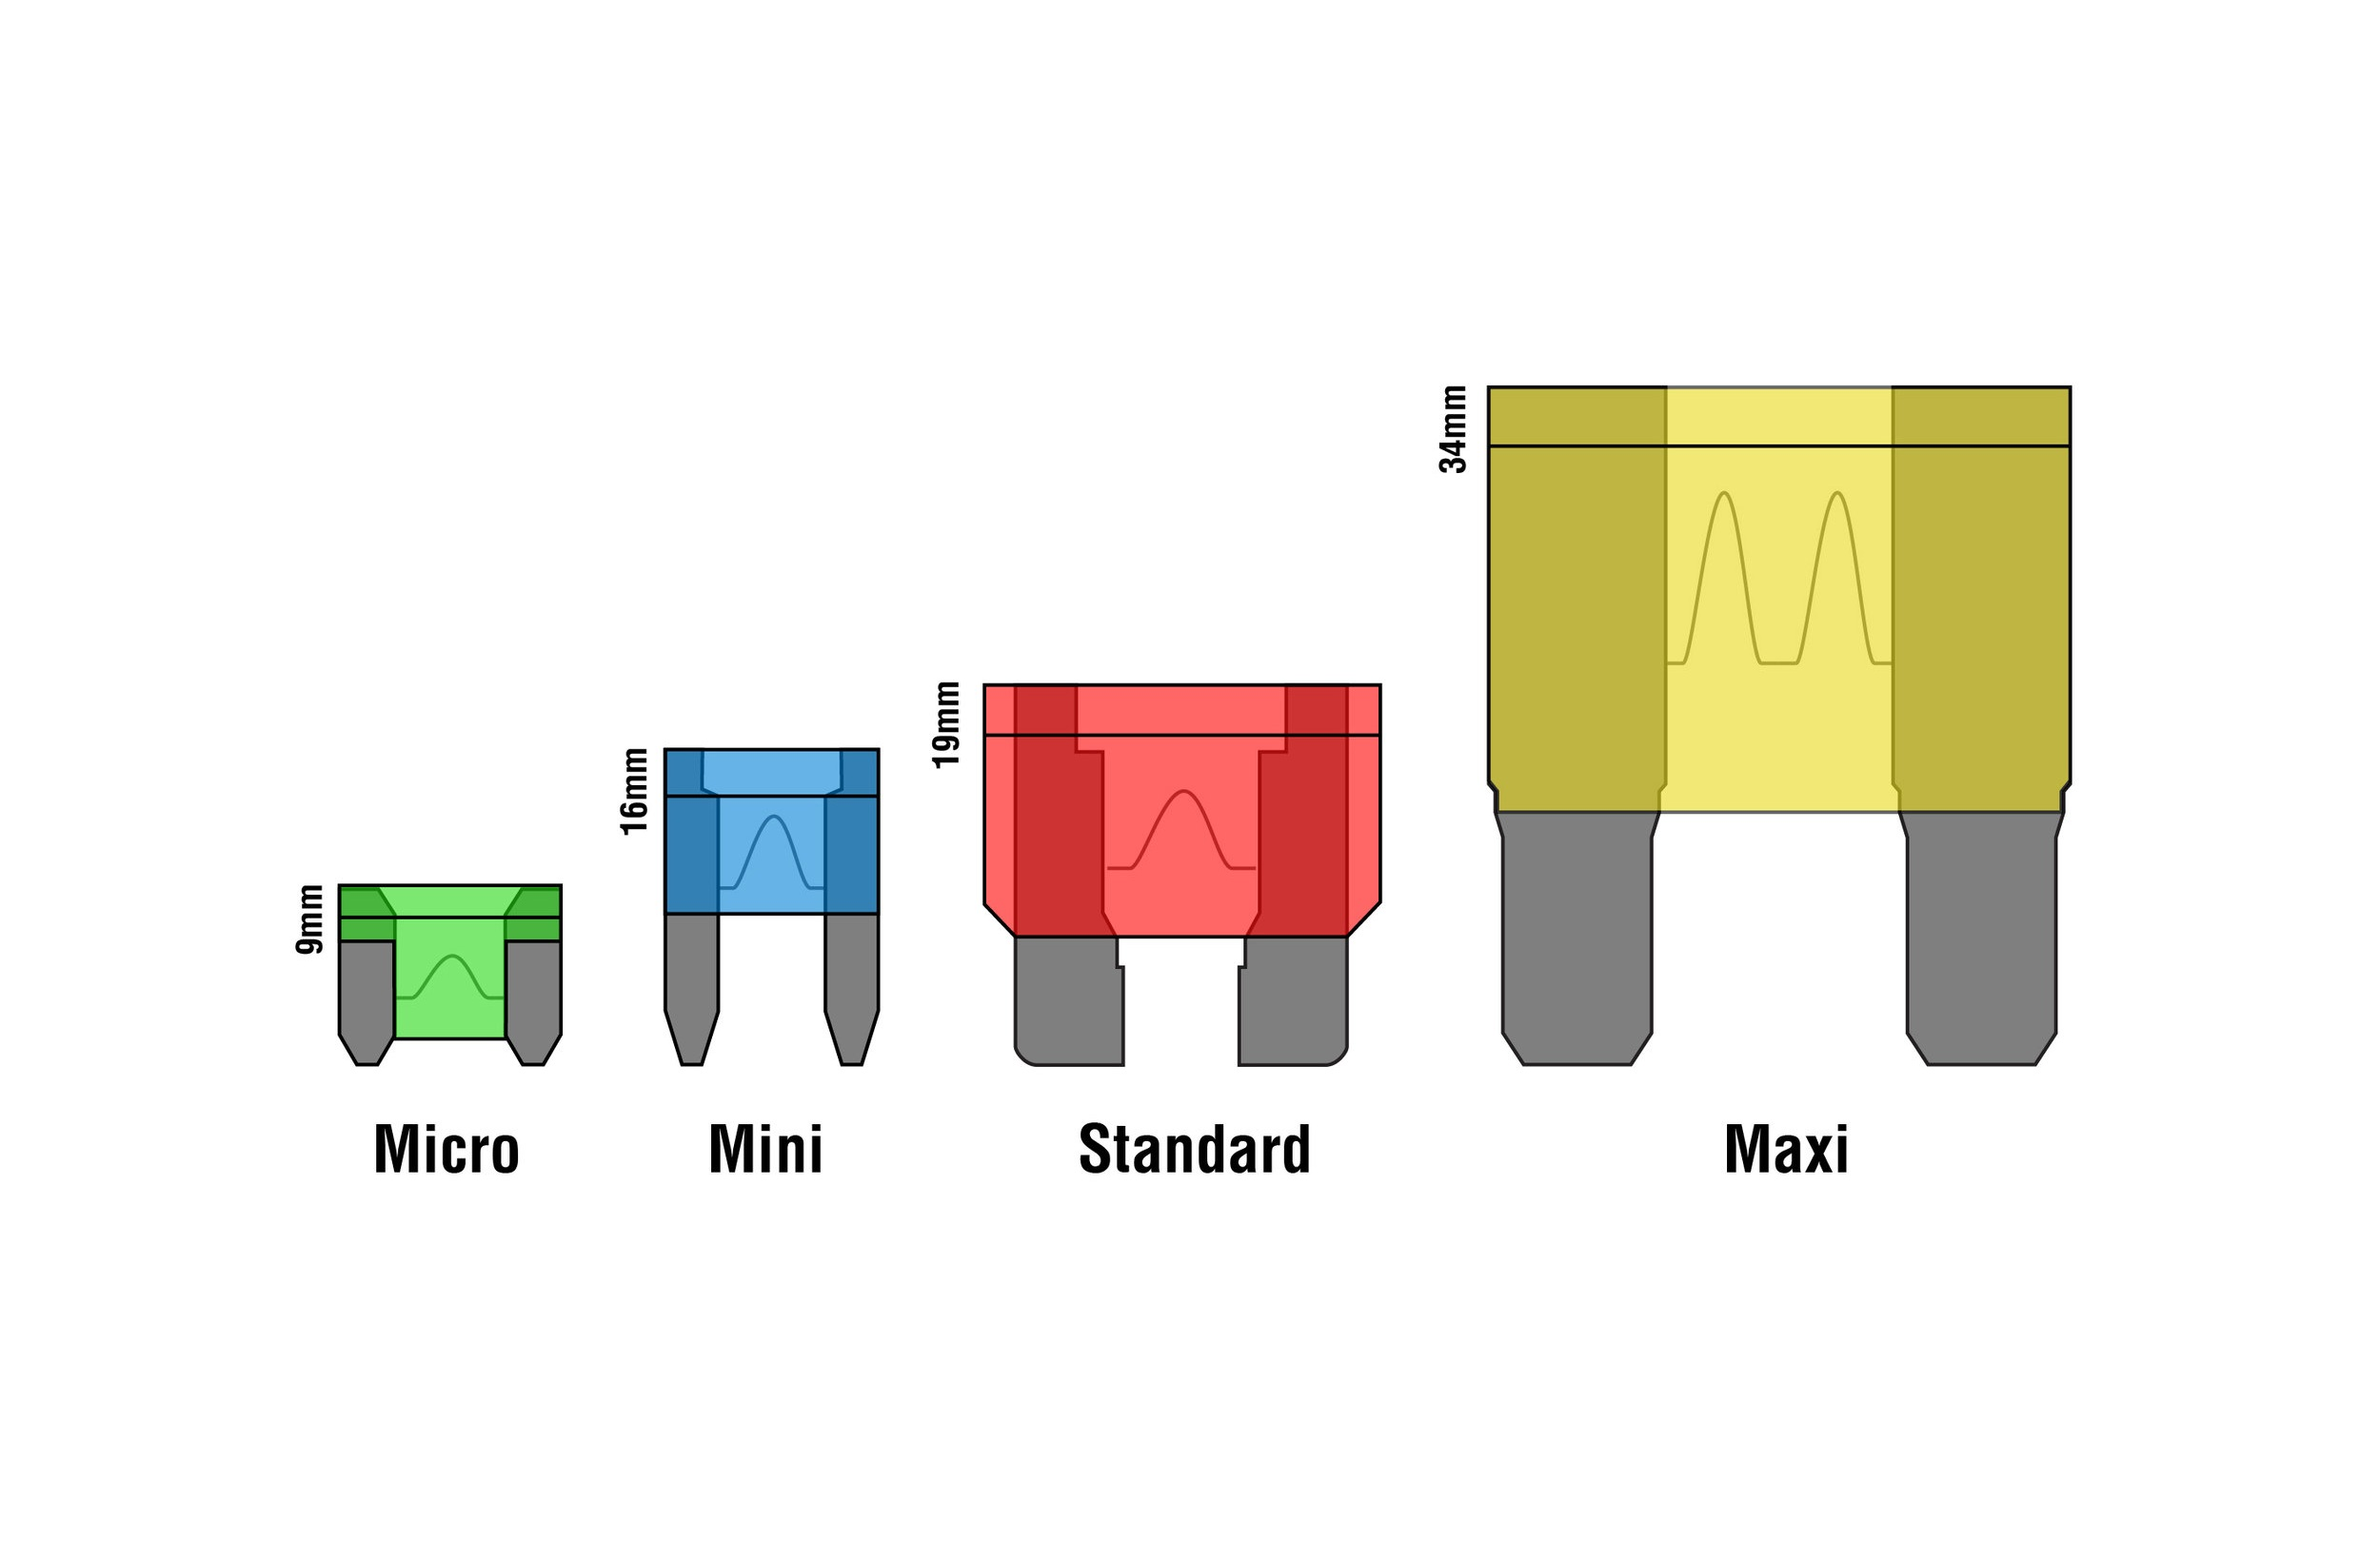 blade fuse types graphic